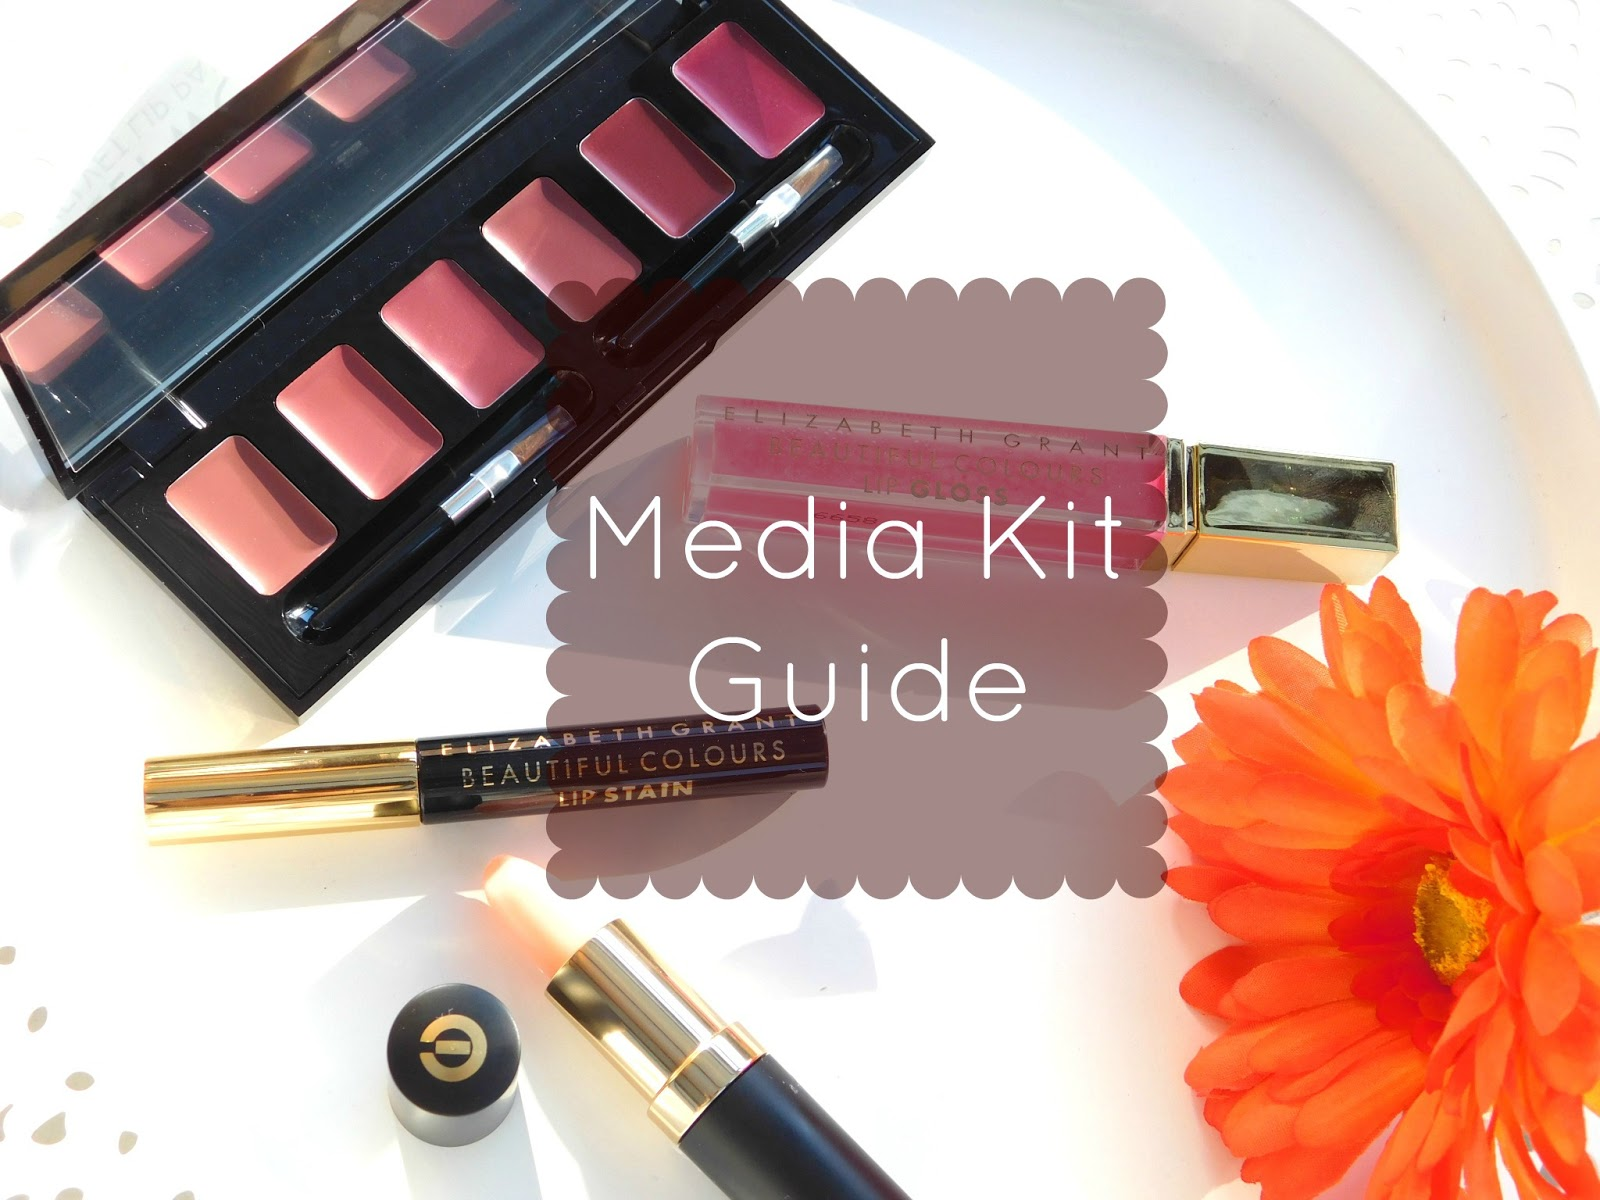 Media Kit, Blogger Tips, Bloggers Working With Brands, Media Kit Guide